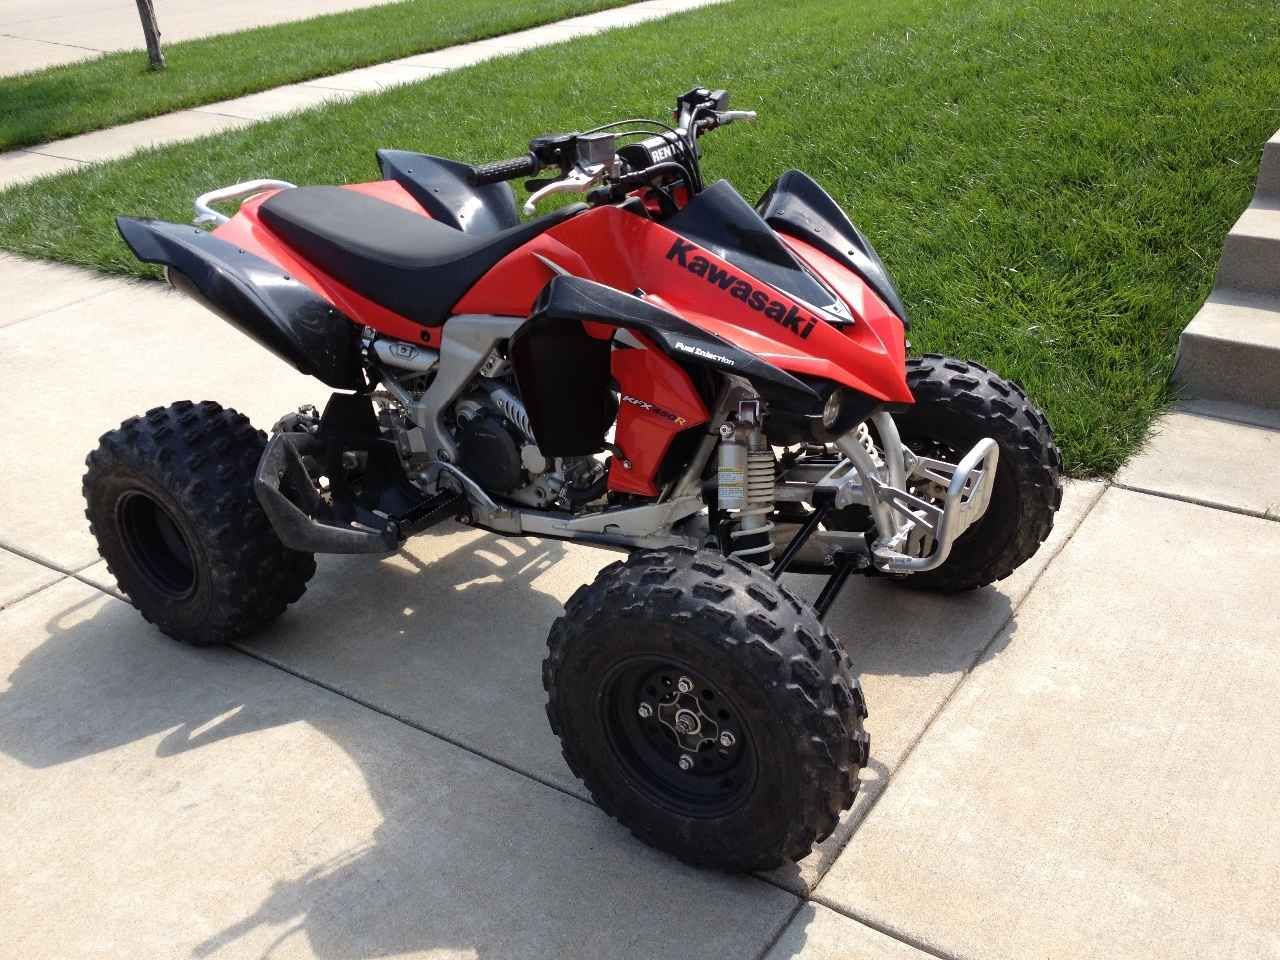 Used 2009 Kawasaki Kfx 450r Atvs For Sale In Nebraska 2009 Black Red Kawasaki Kfx450r In Great Condition Very Clean And Well M Atv Kawasaki Atv Four Wheelers